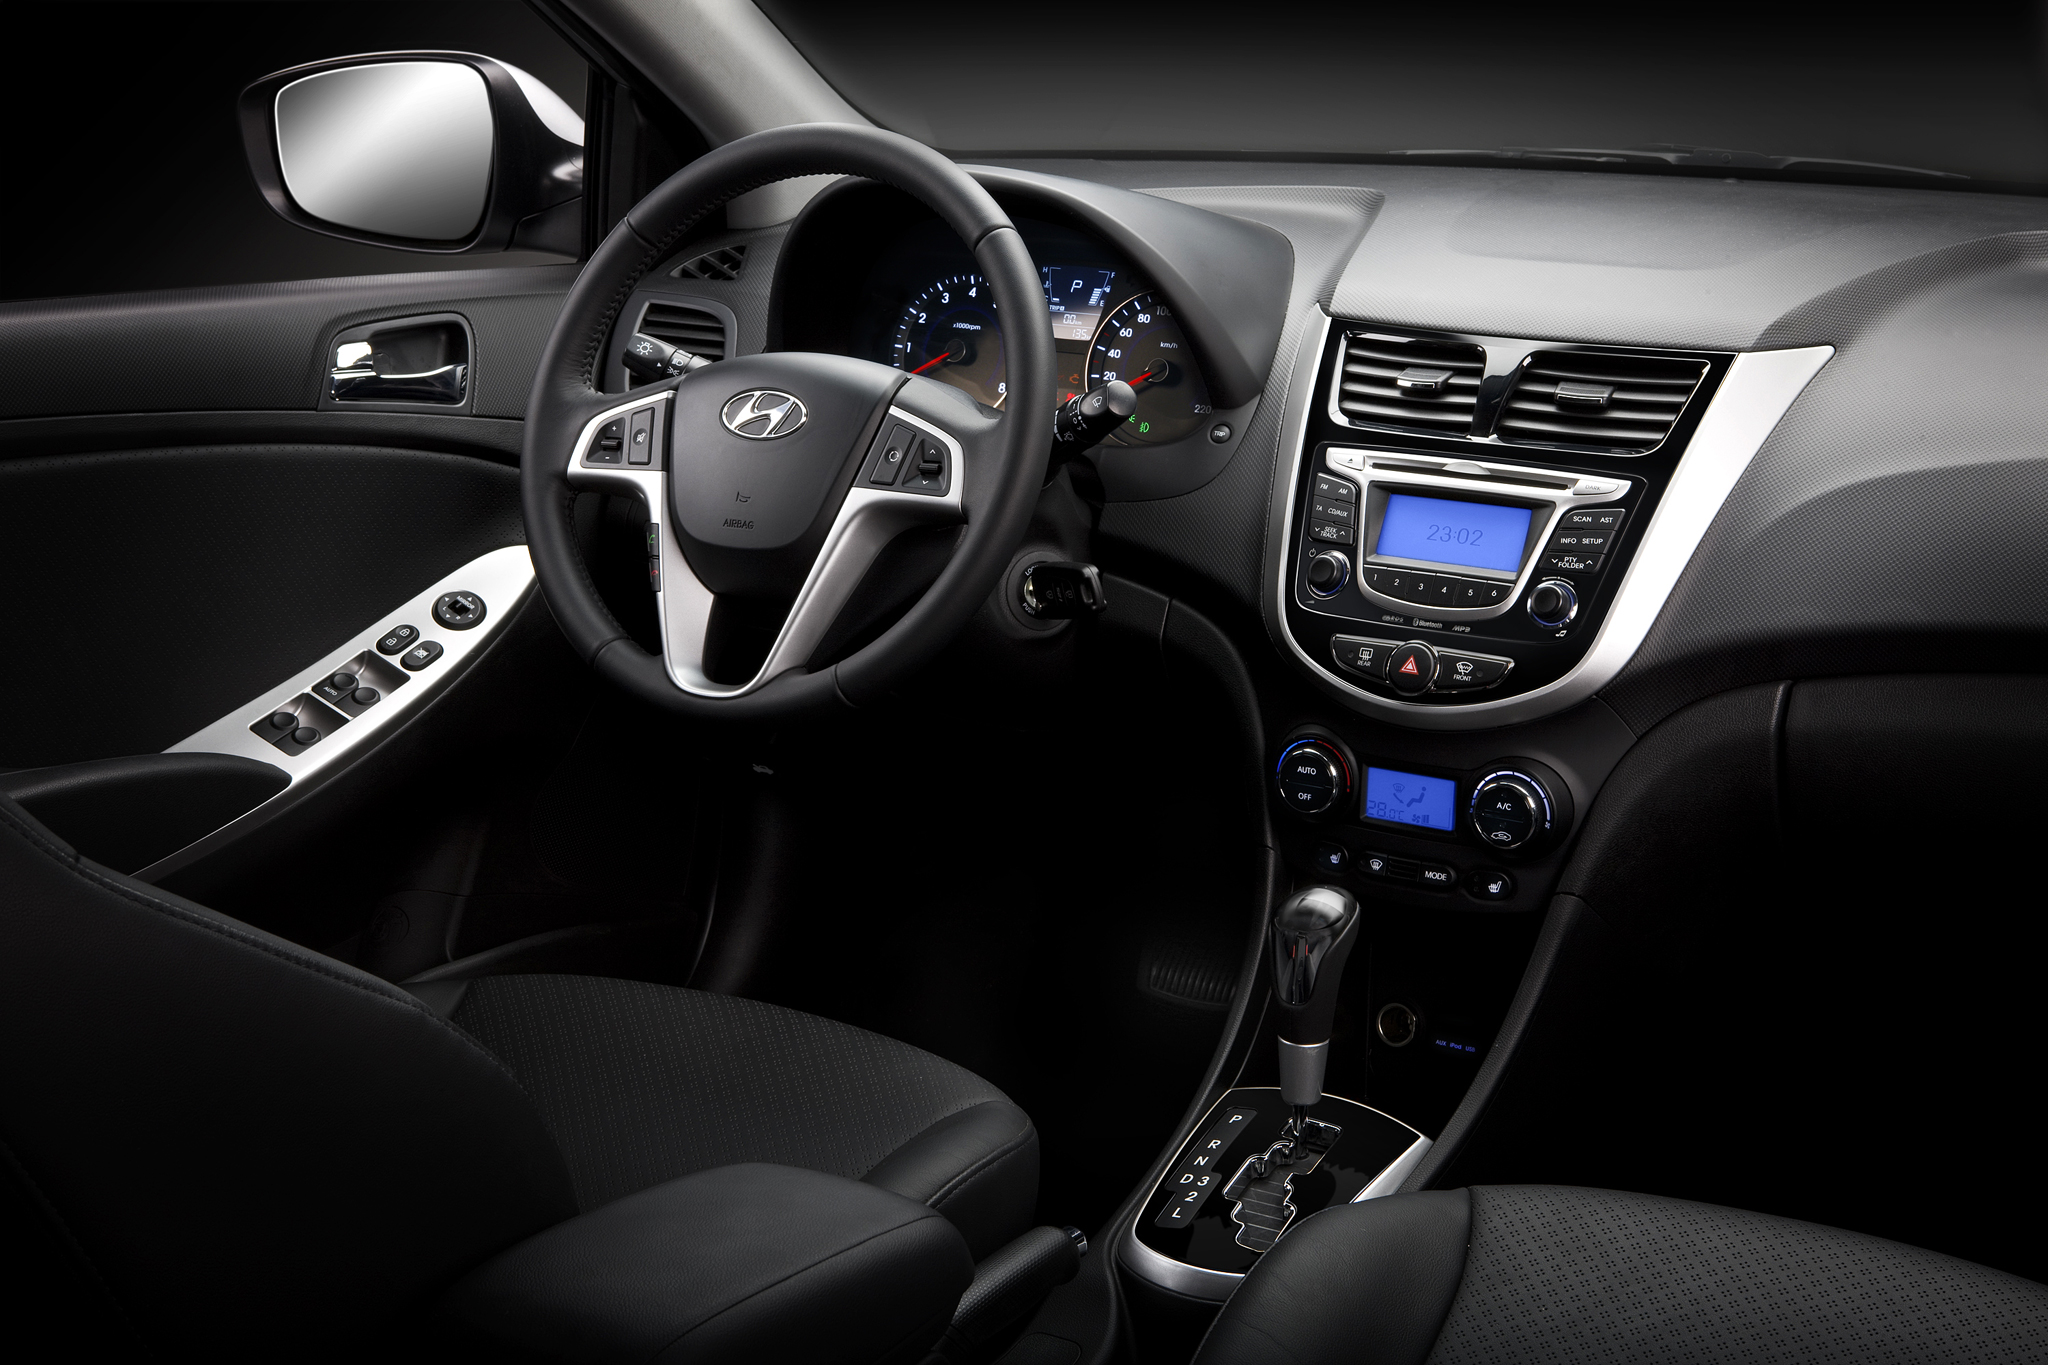 2011 Hyundai Solaris Hatchback Pictures Information And